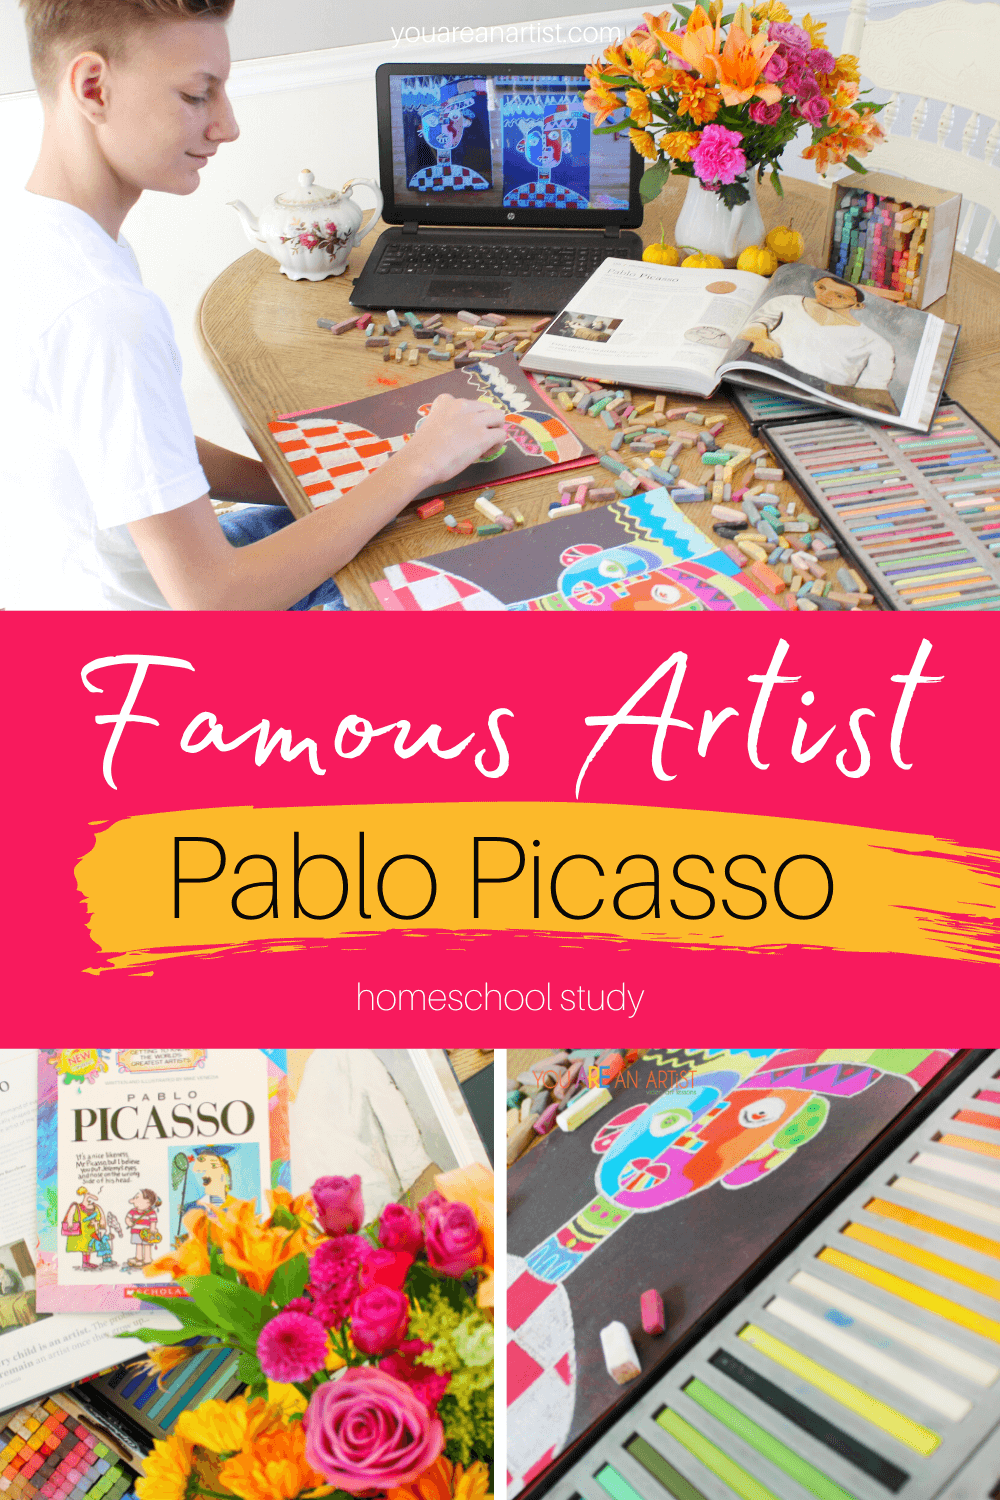 Famous Artist Pablo Picasso Homeschool Study: This homeschool study has everything you need to learn more about artist Pablo Picasso, including a chance to create your own work of art! #artprojects #famousartistsonlineunitstudy #onlineunitstudy #arthistory #arteducation #modernart ##onlineartcourse #picasso #pablopicasso #youareanartist #chalkpastels #homeschoolart